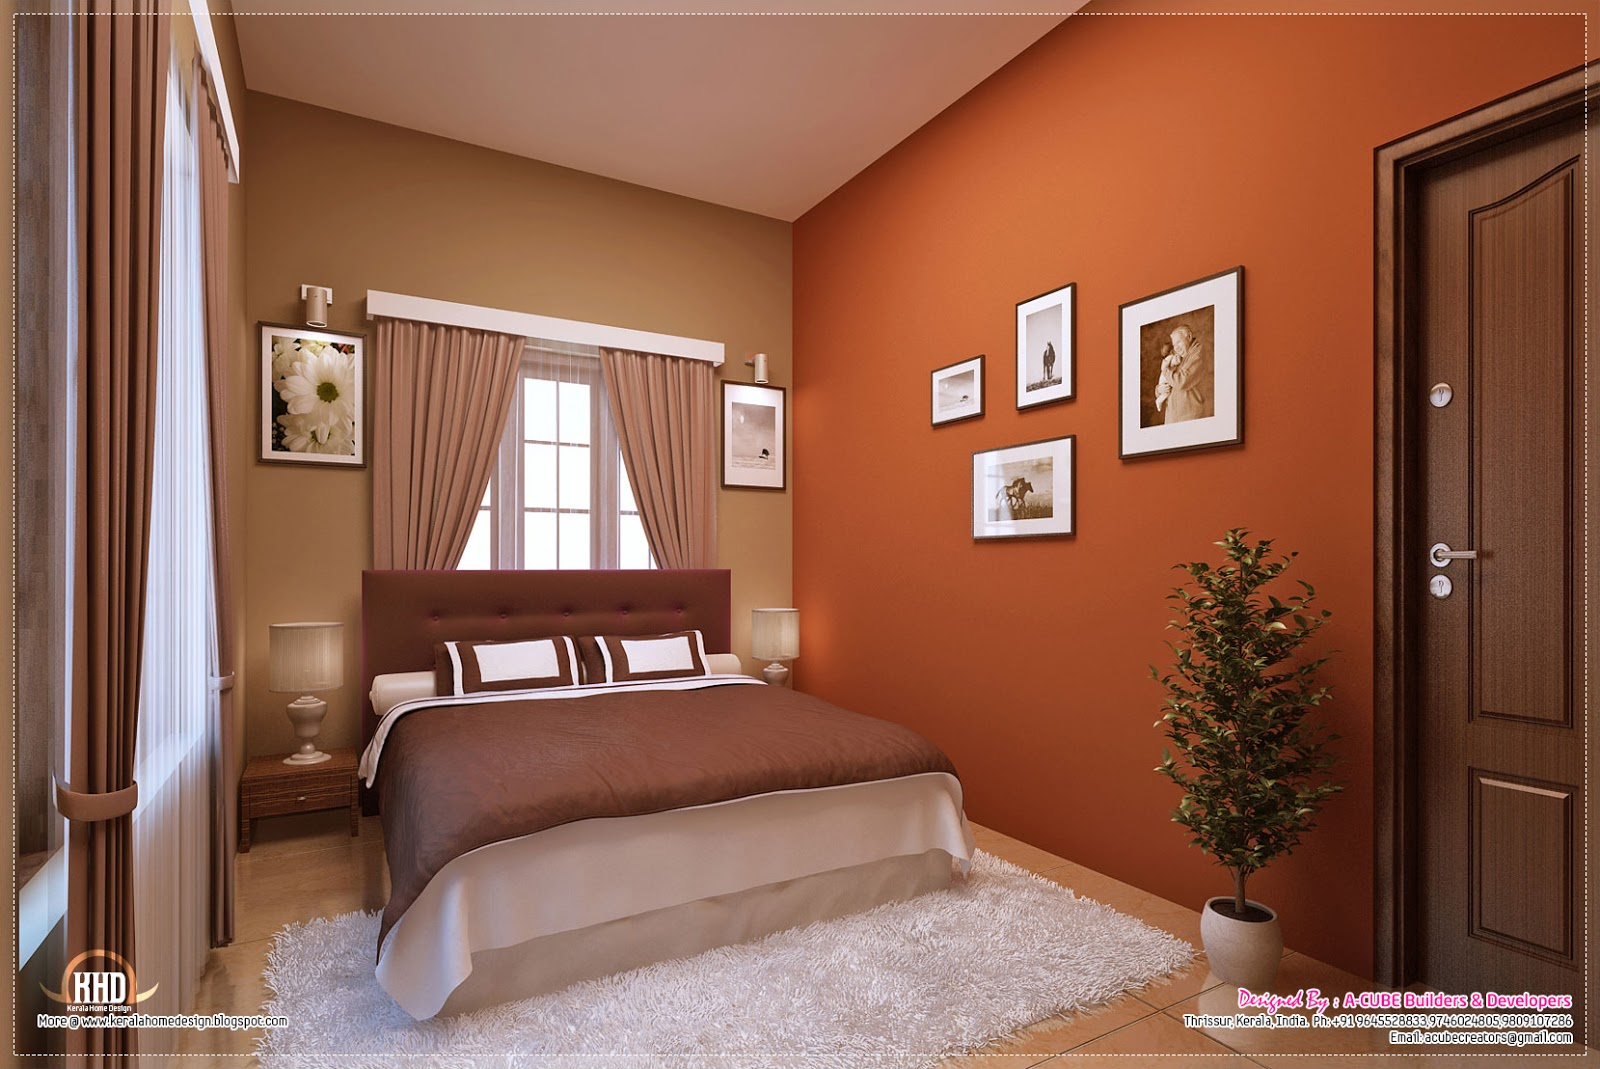 Awesome interior decoration ideas kerala home design and for Indian small house design 2 bedroom